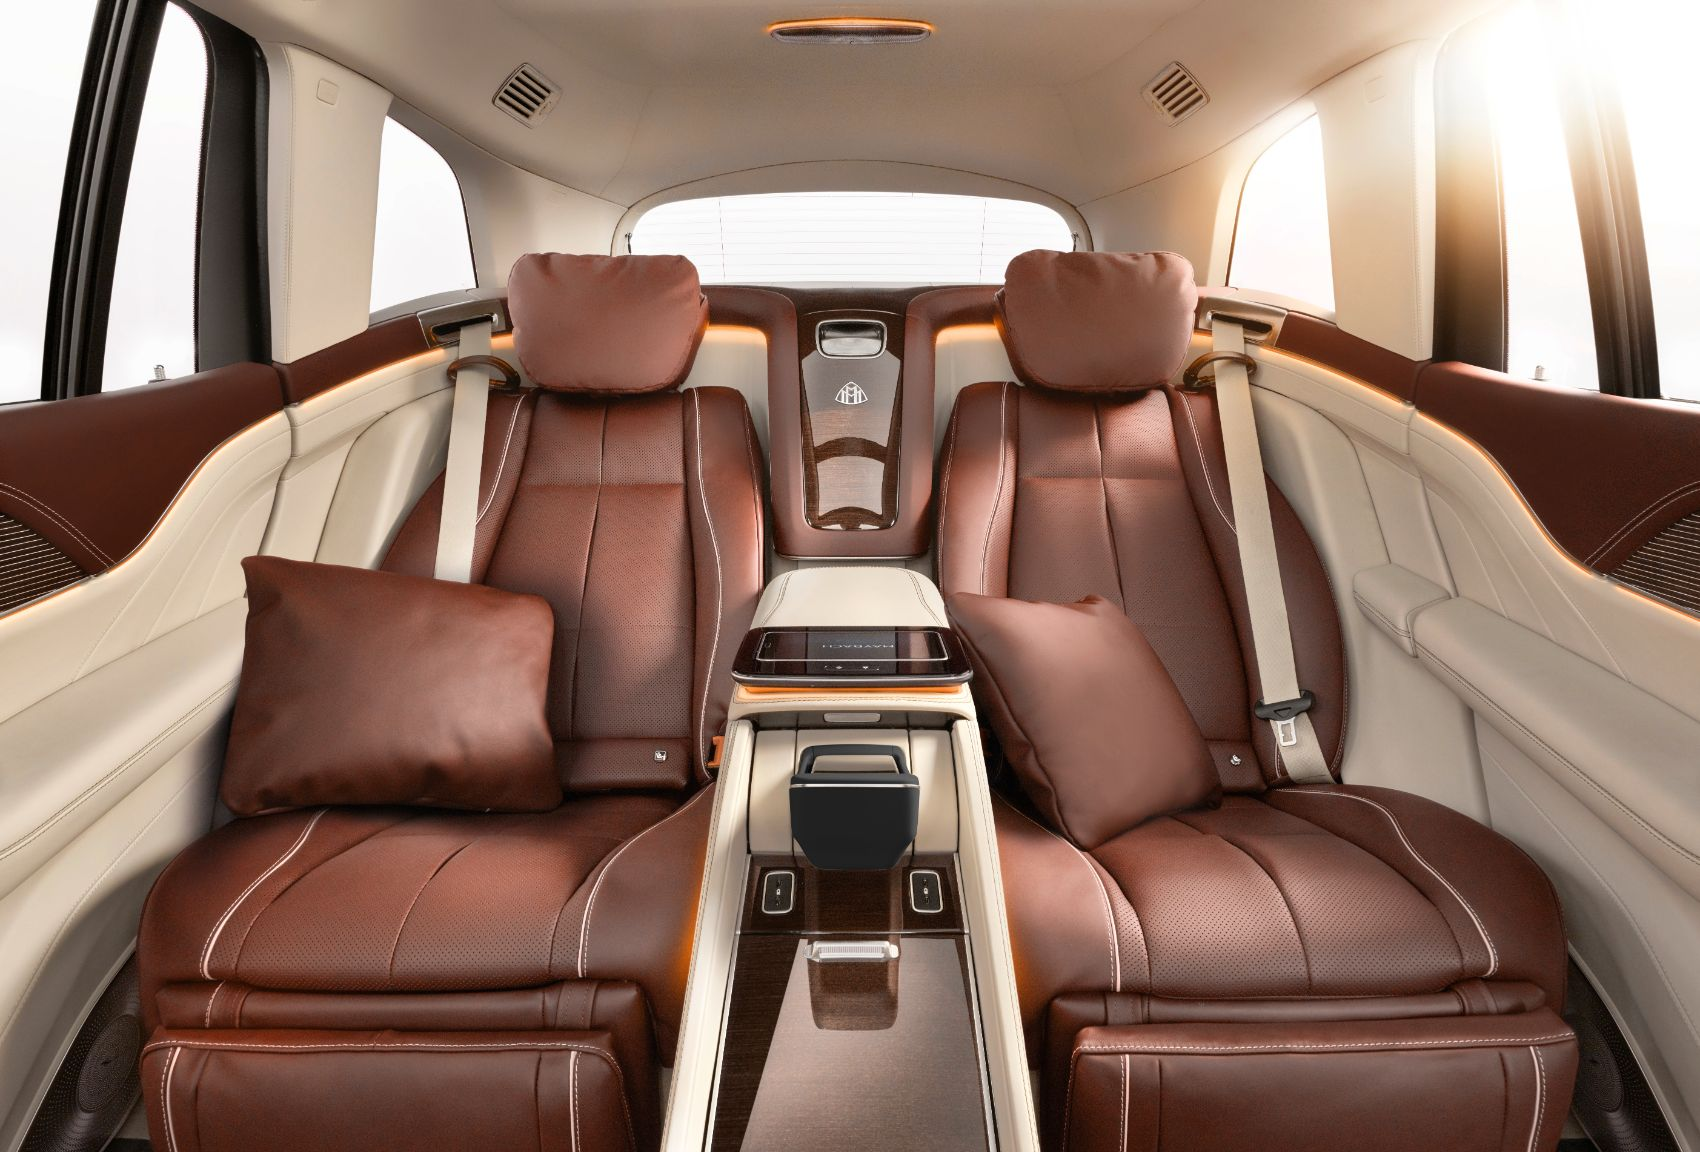 Mercedes-Maybach GLS: This Four-Wheeled Luxury Condo has a Fridge & Champagne Flutes